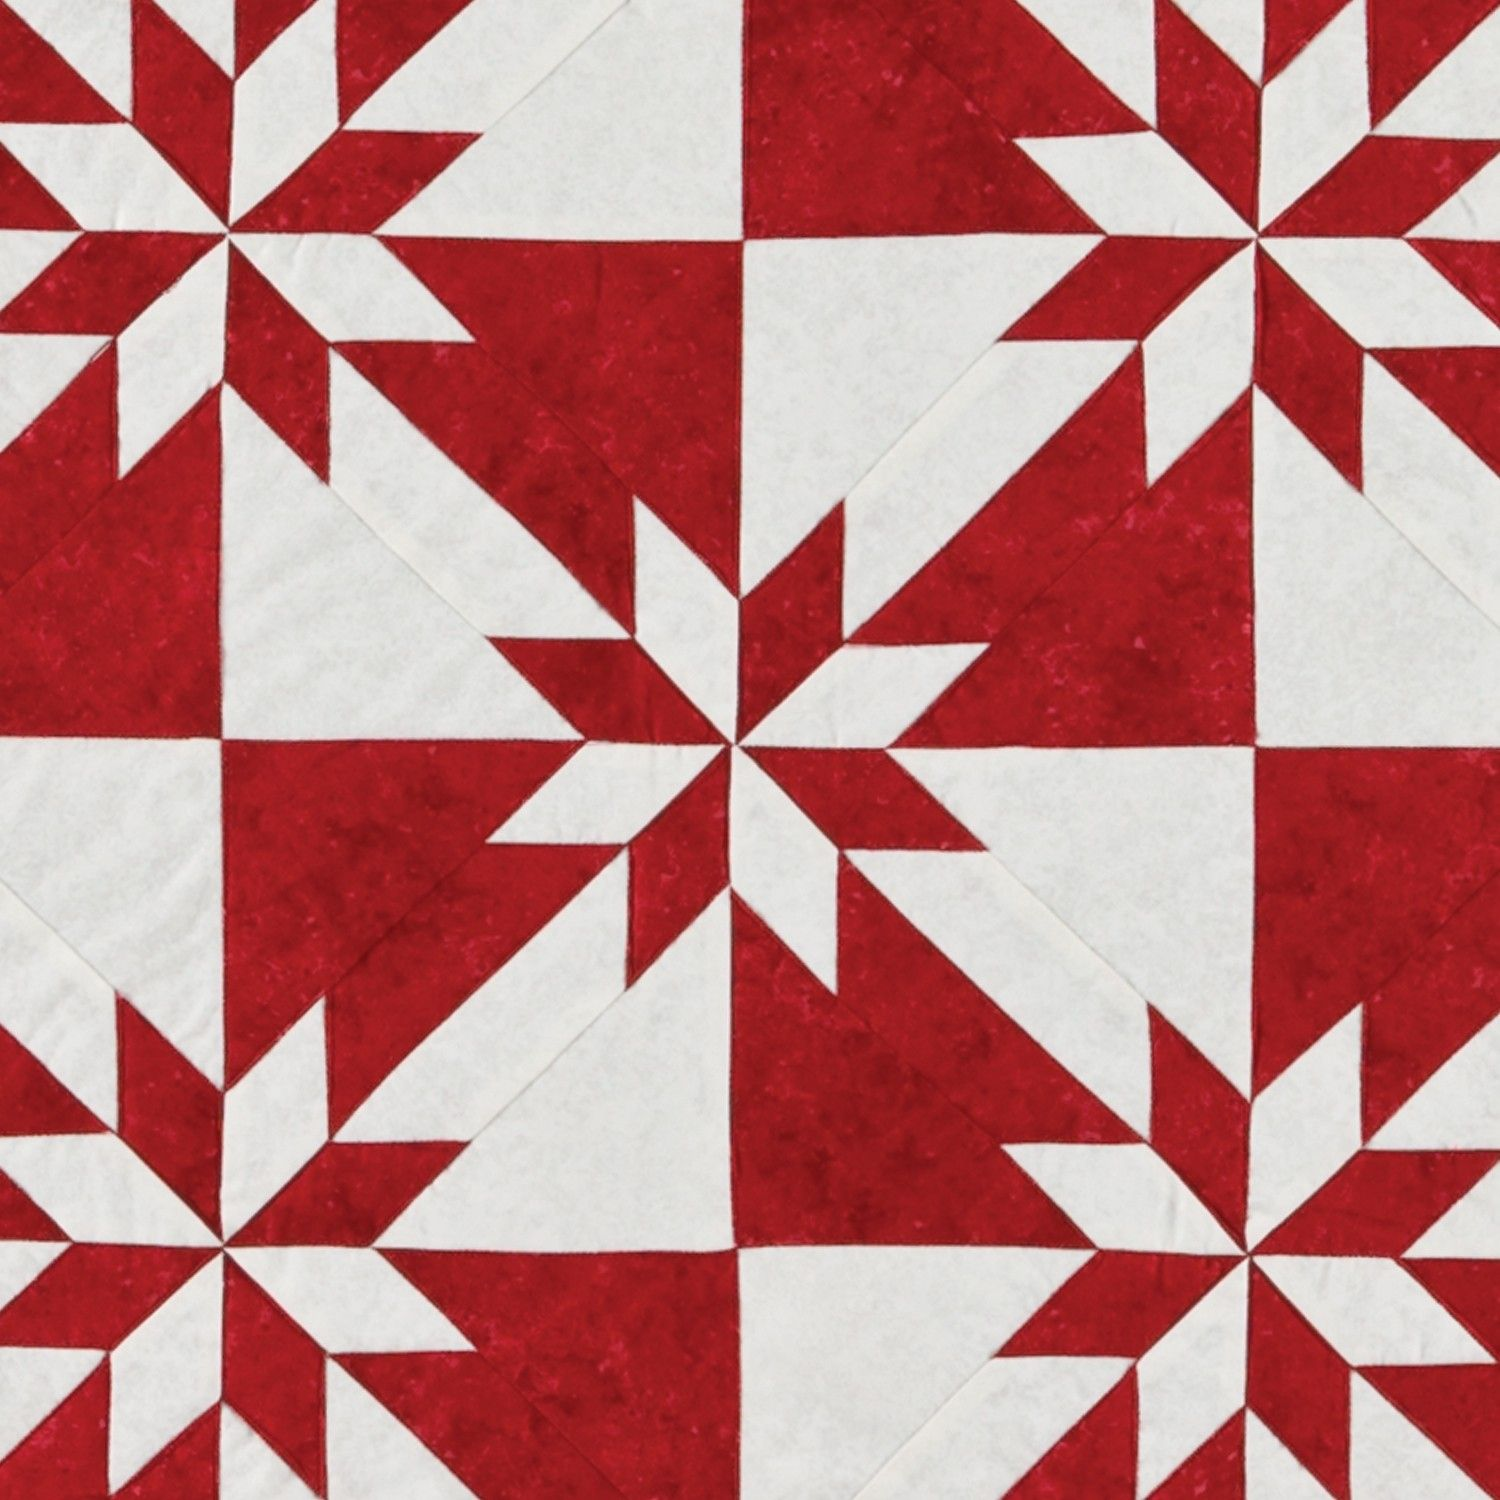 Go Hunter Star 6 Finished Quilts Pinterest Hunters Star Quilt